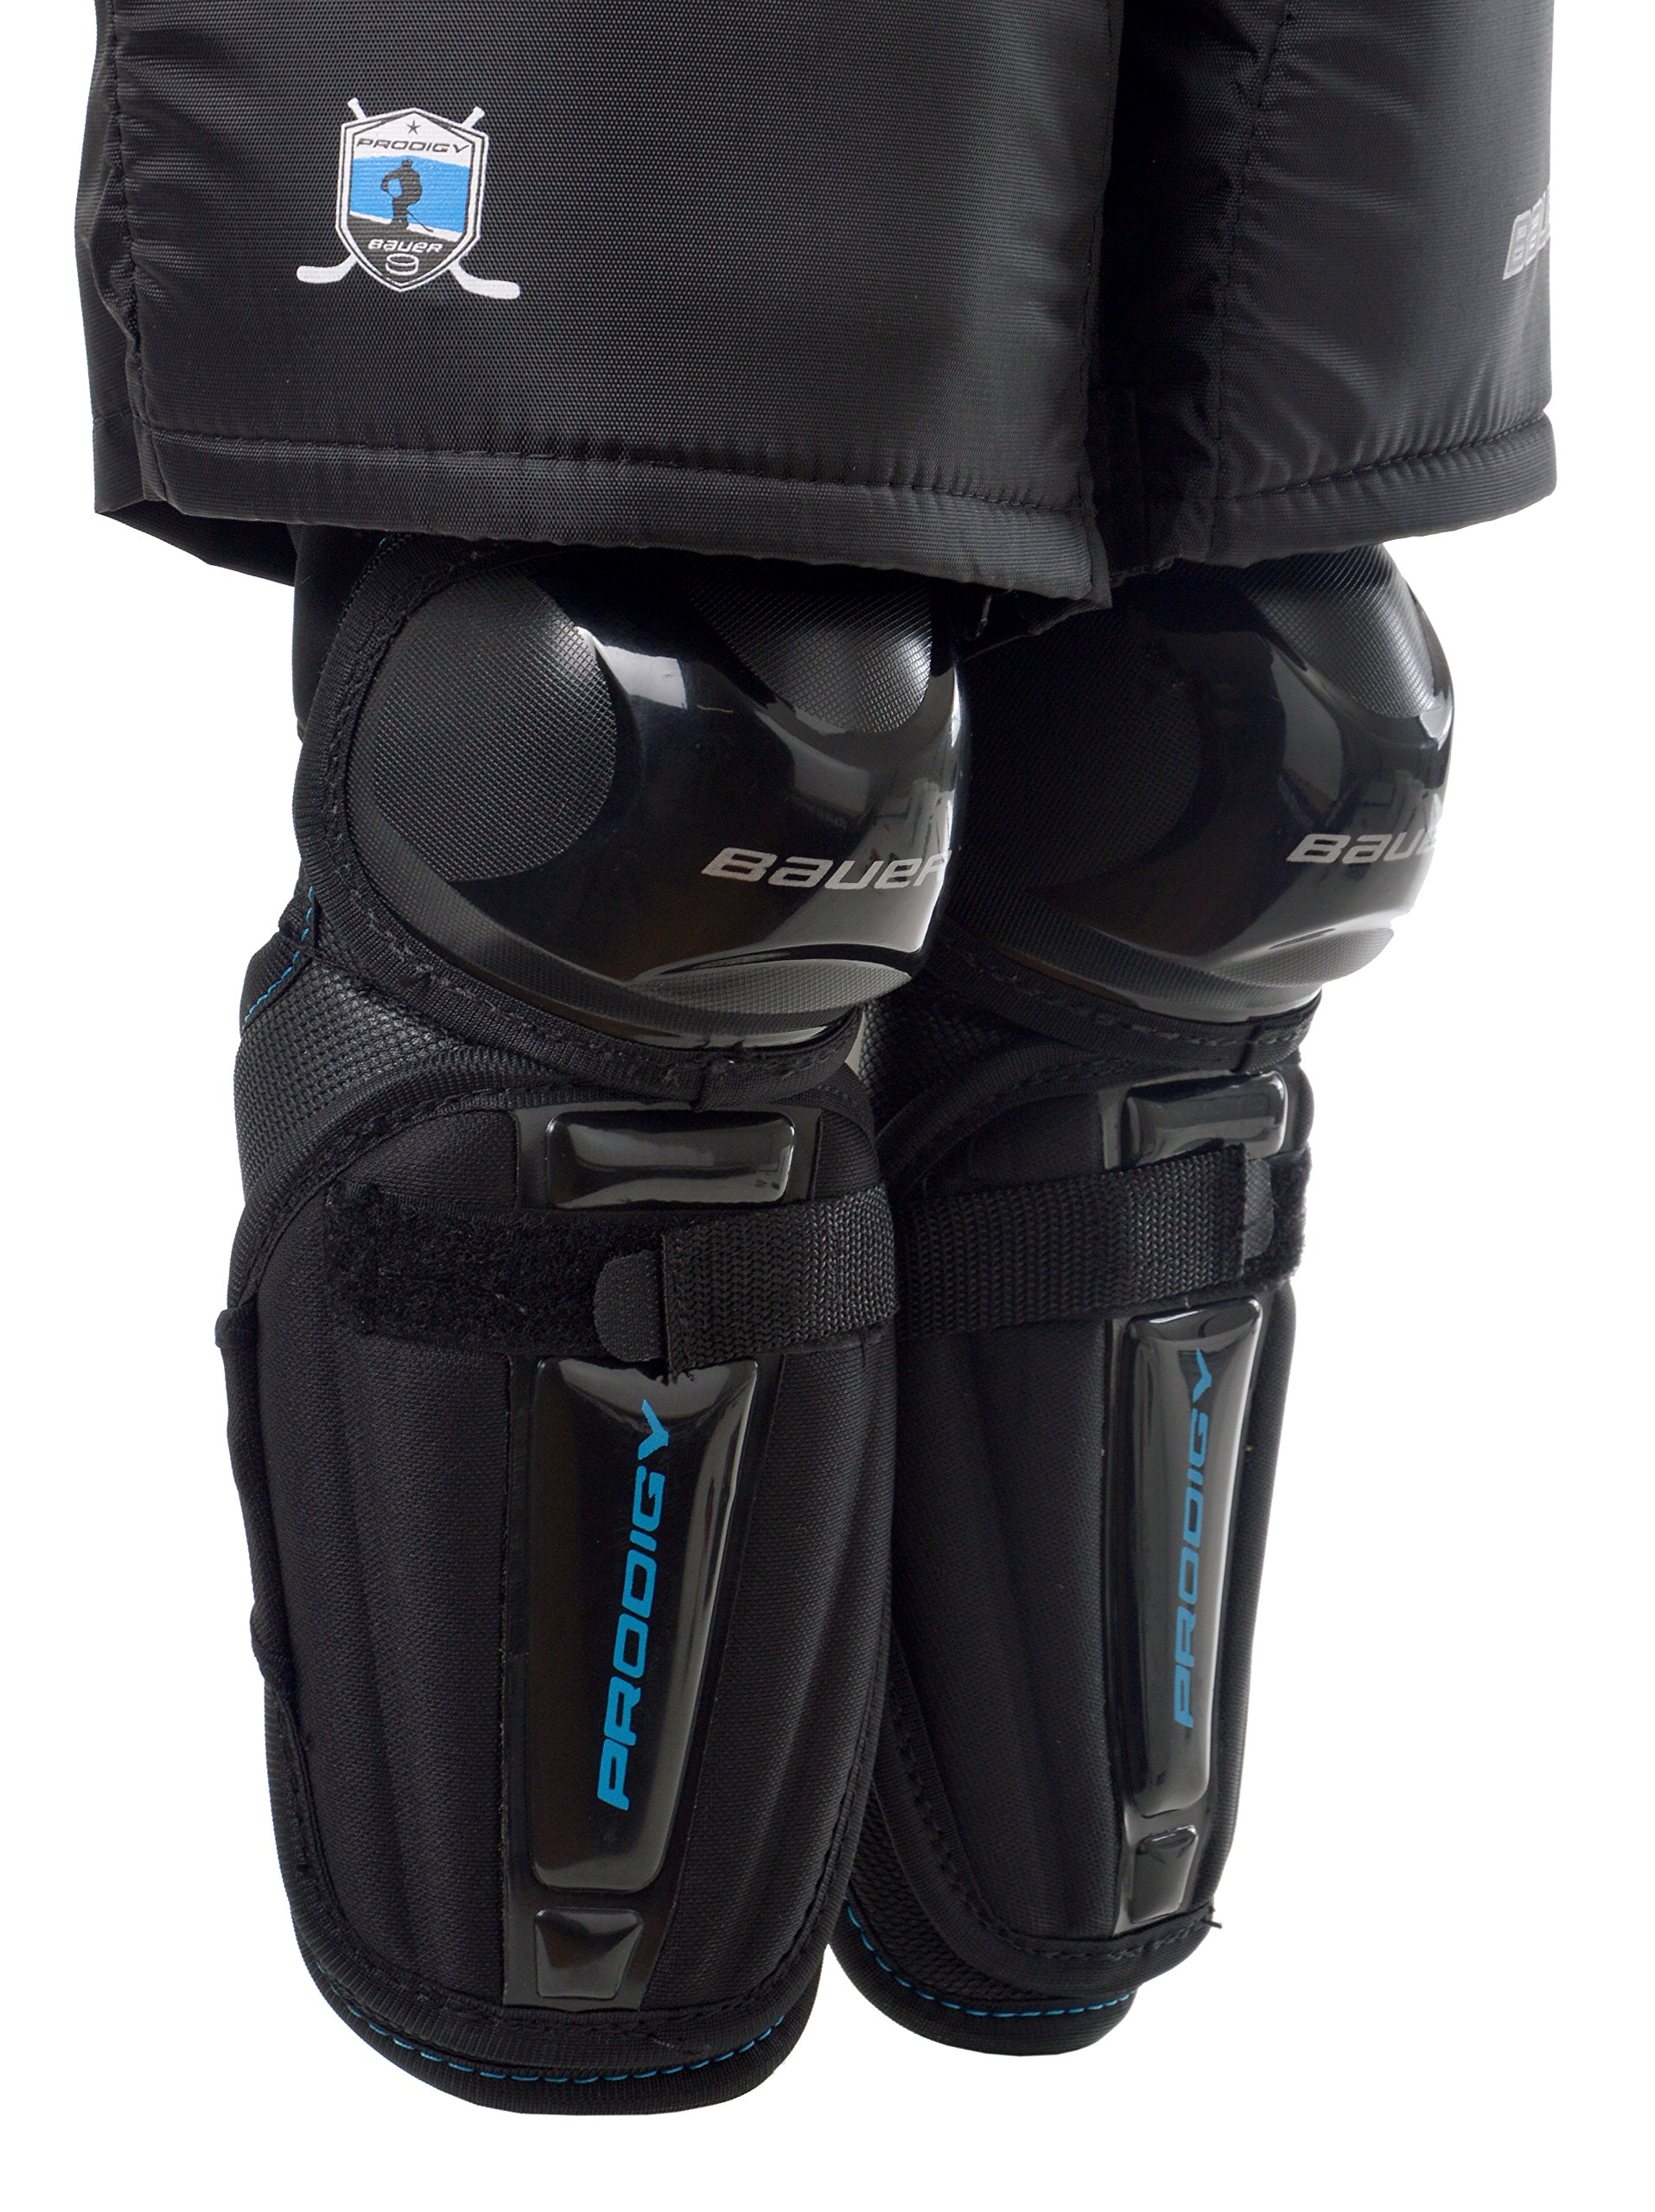 Bauer Prodigy Bottom - YTH Black, Large by Bauer (Image #4)